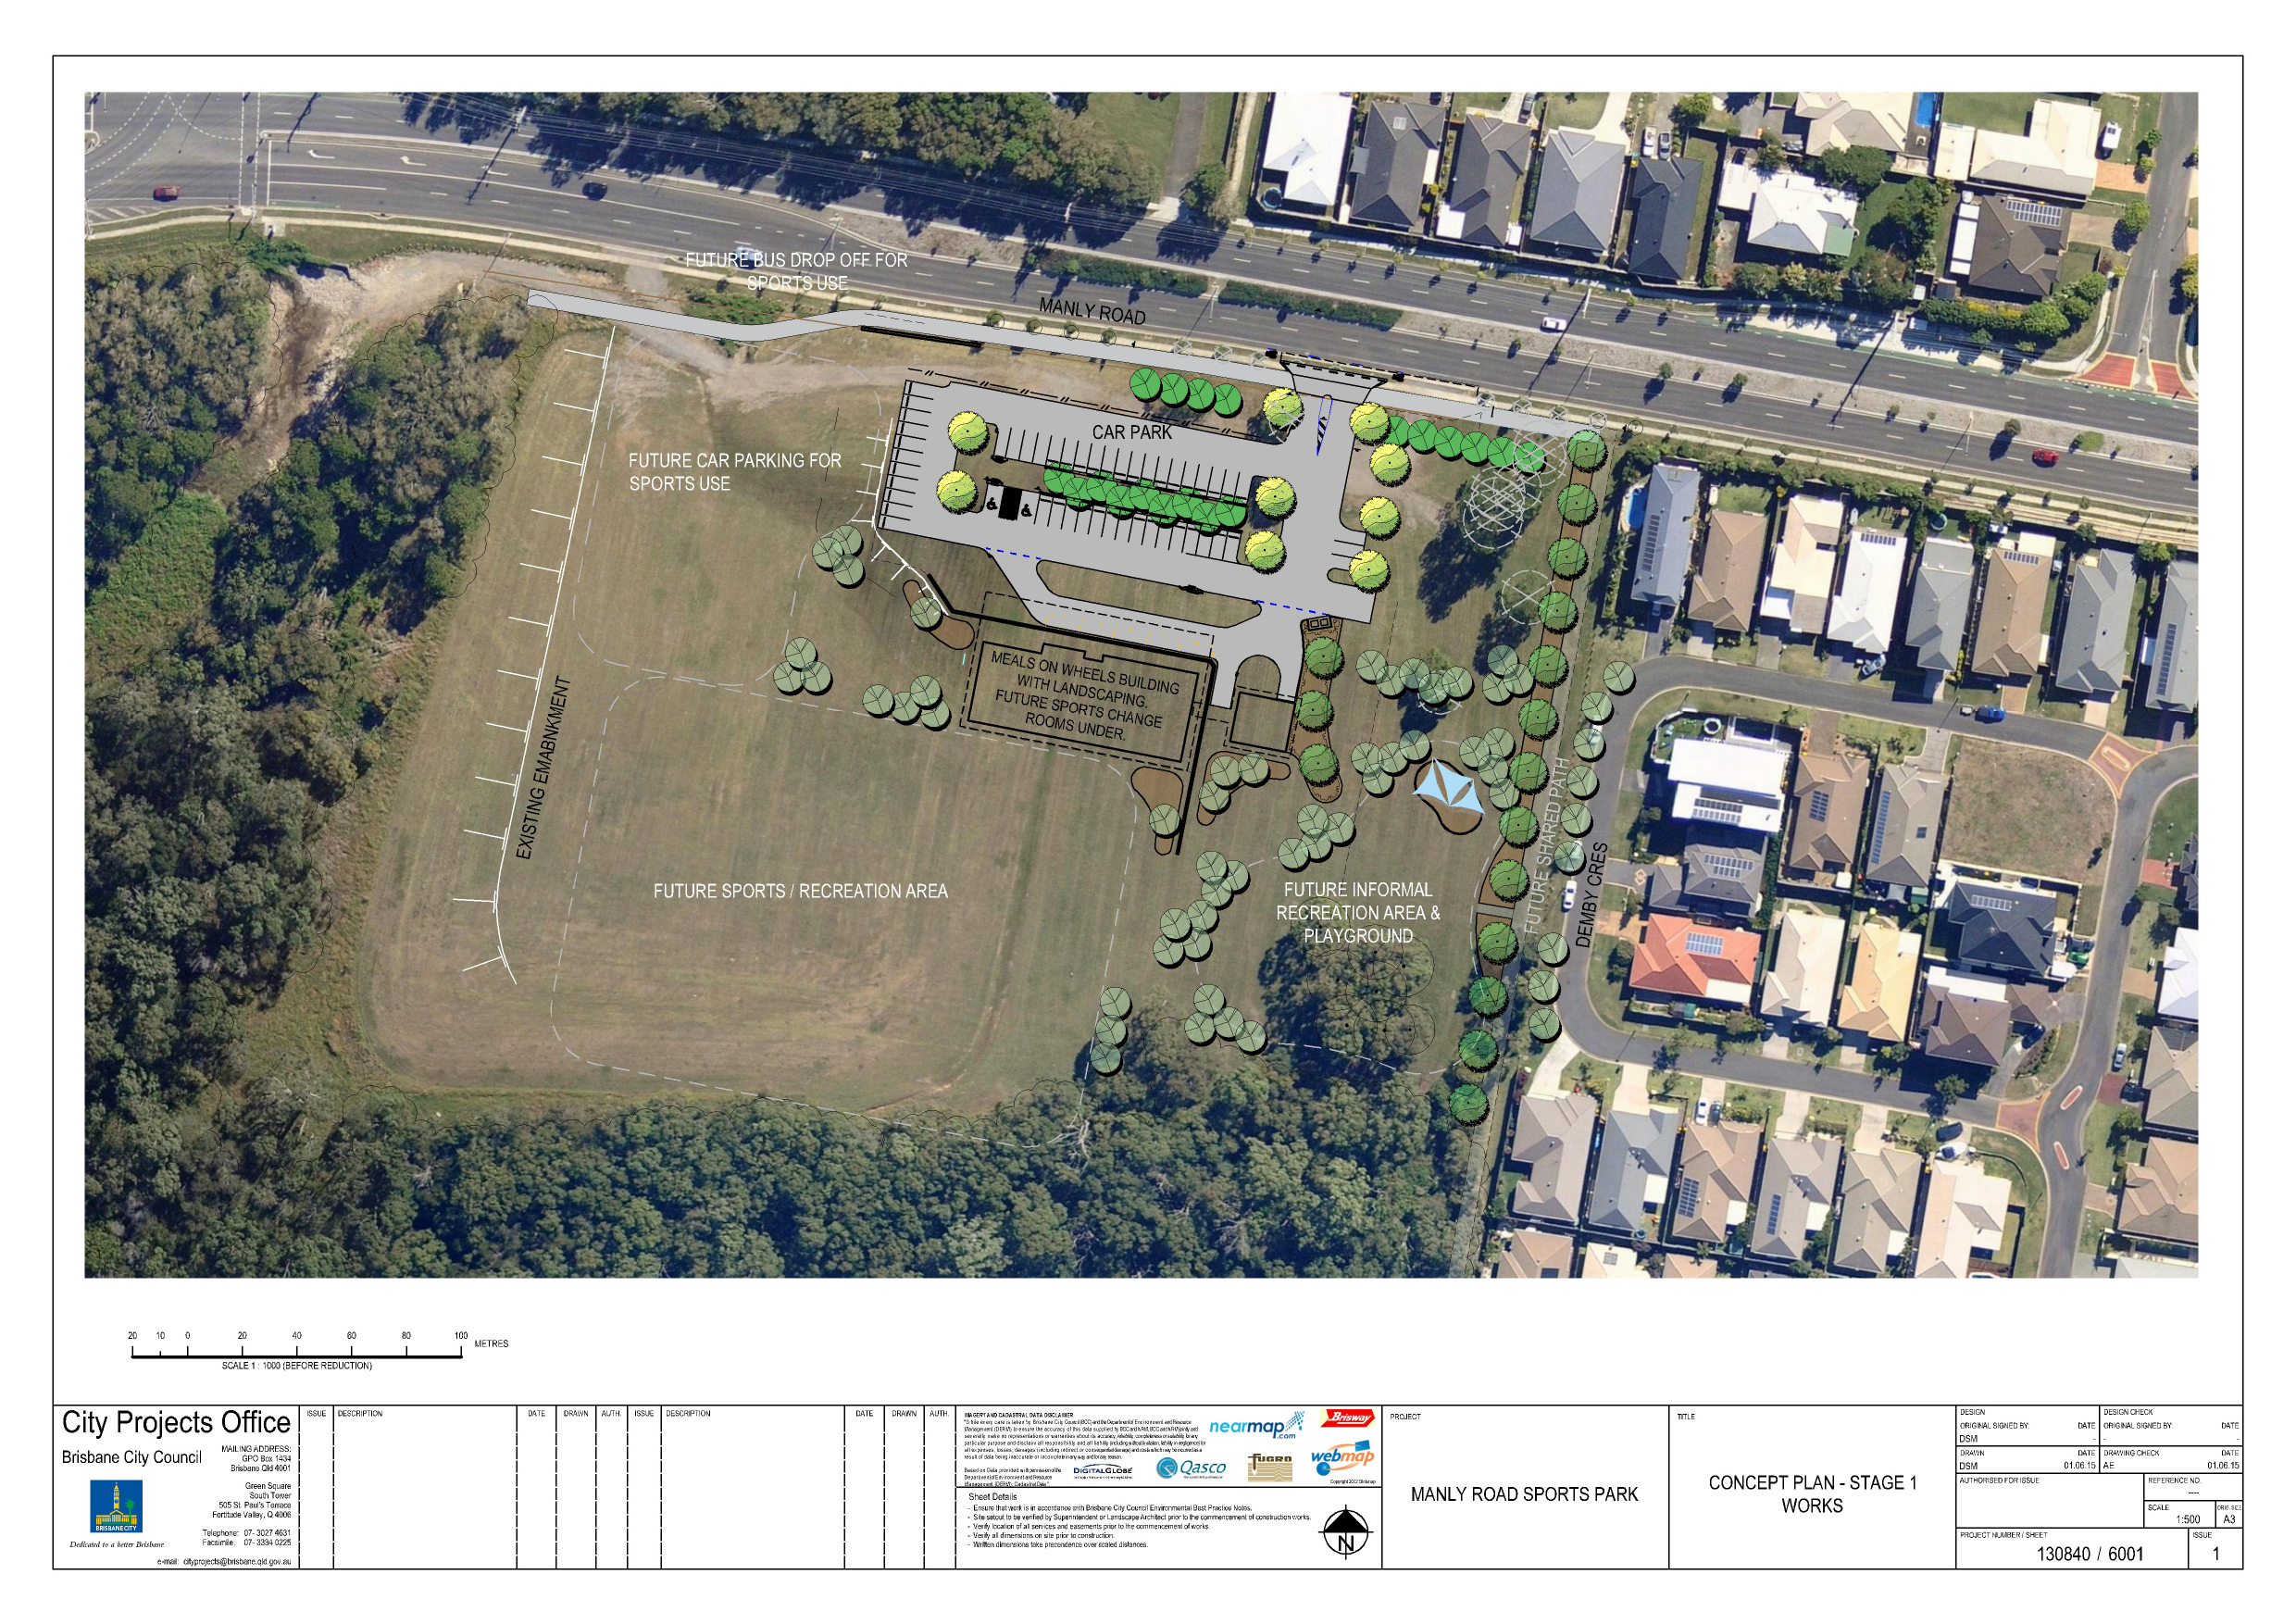 Concept of the Meals on Wheels construction for 880 Manly rd, Tingalpa